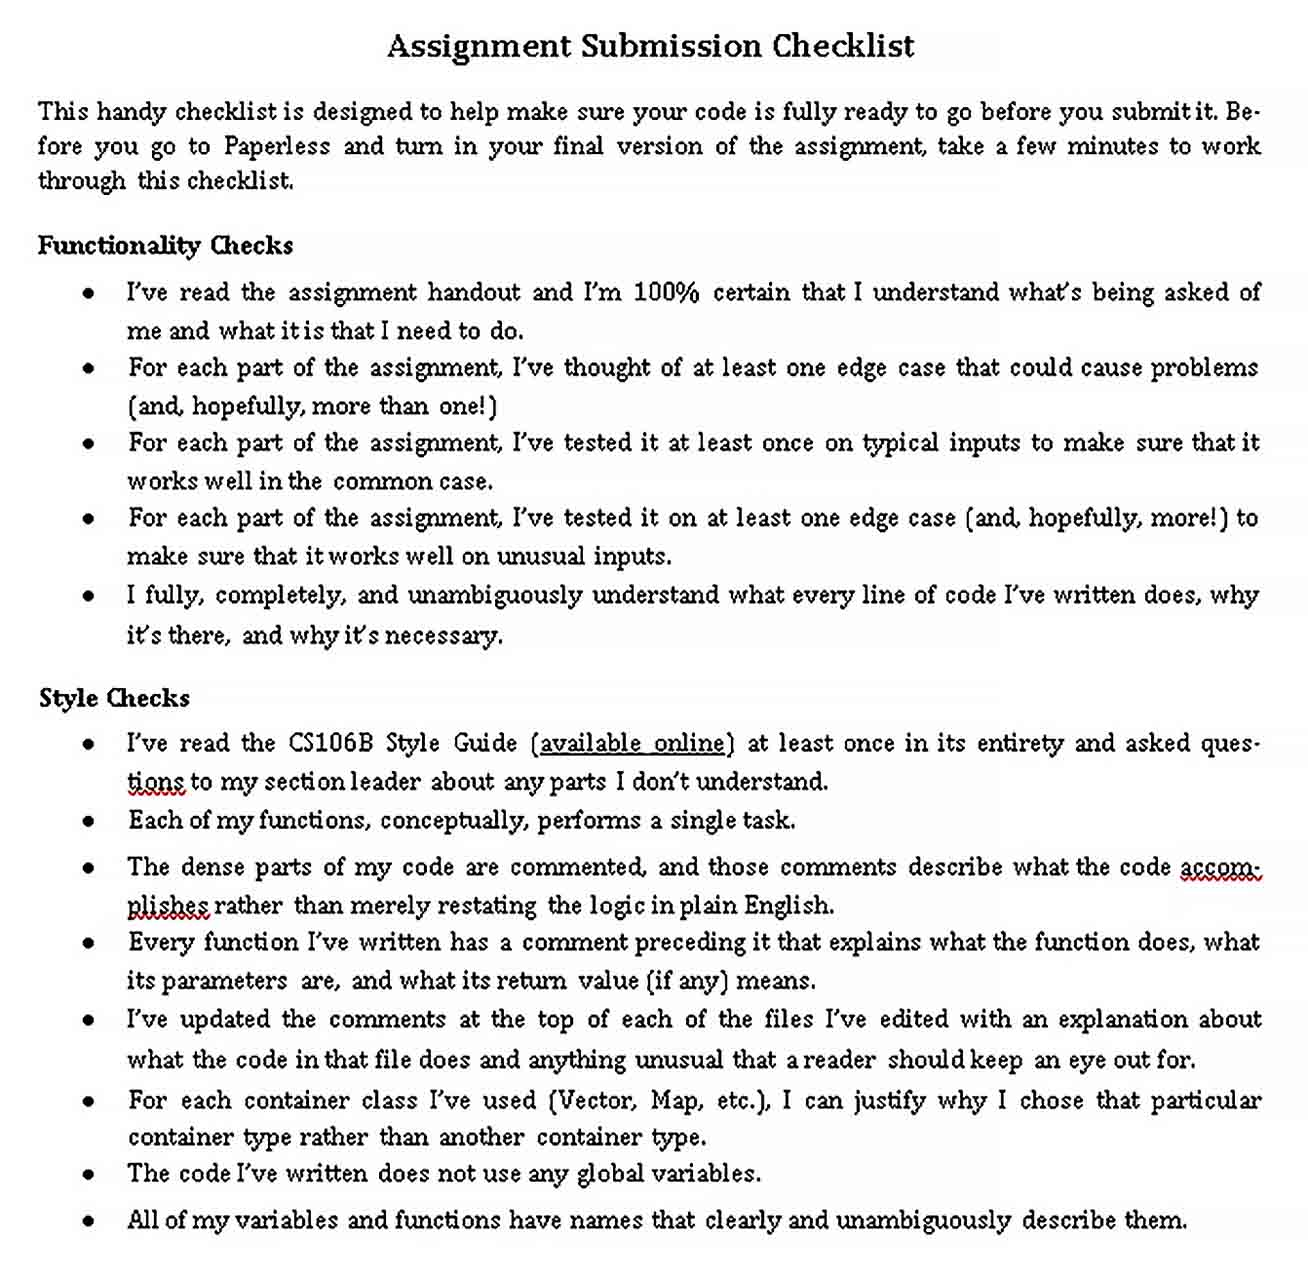 Assignment Submission Checklist